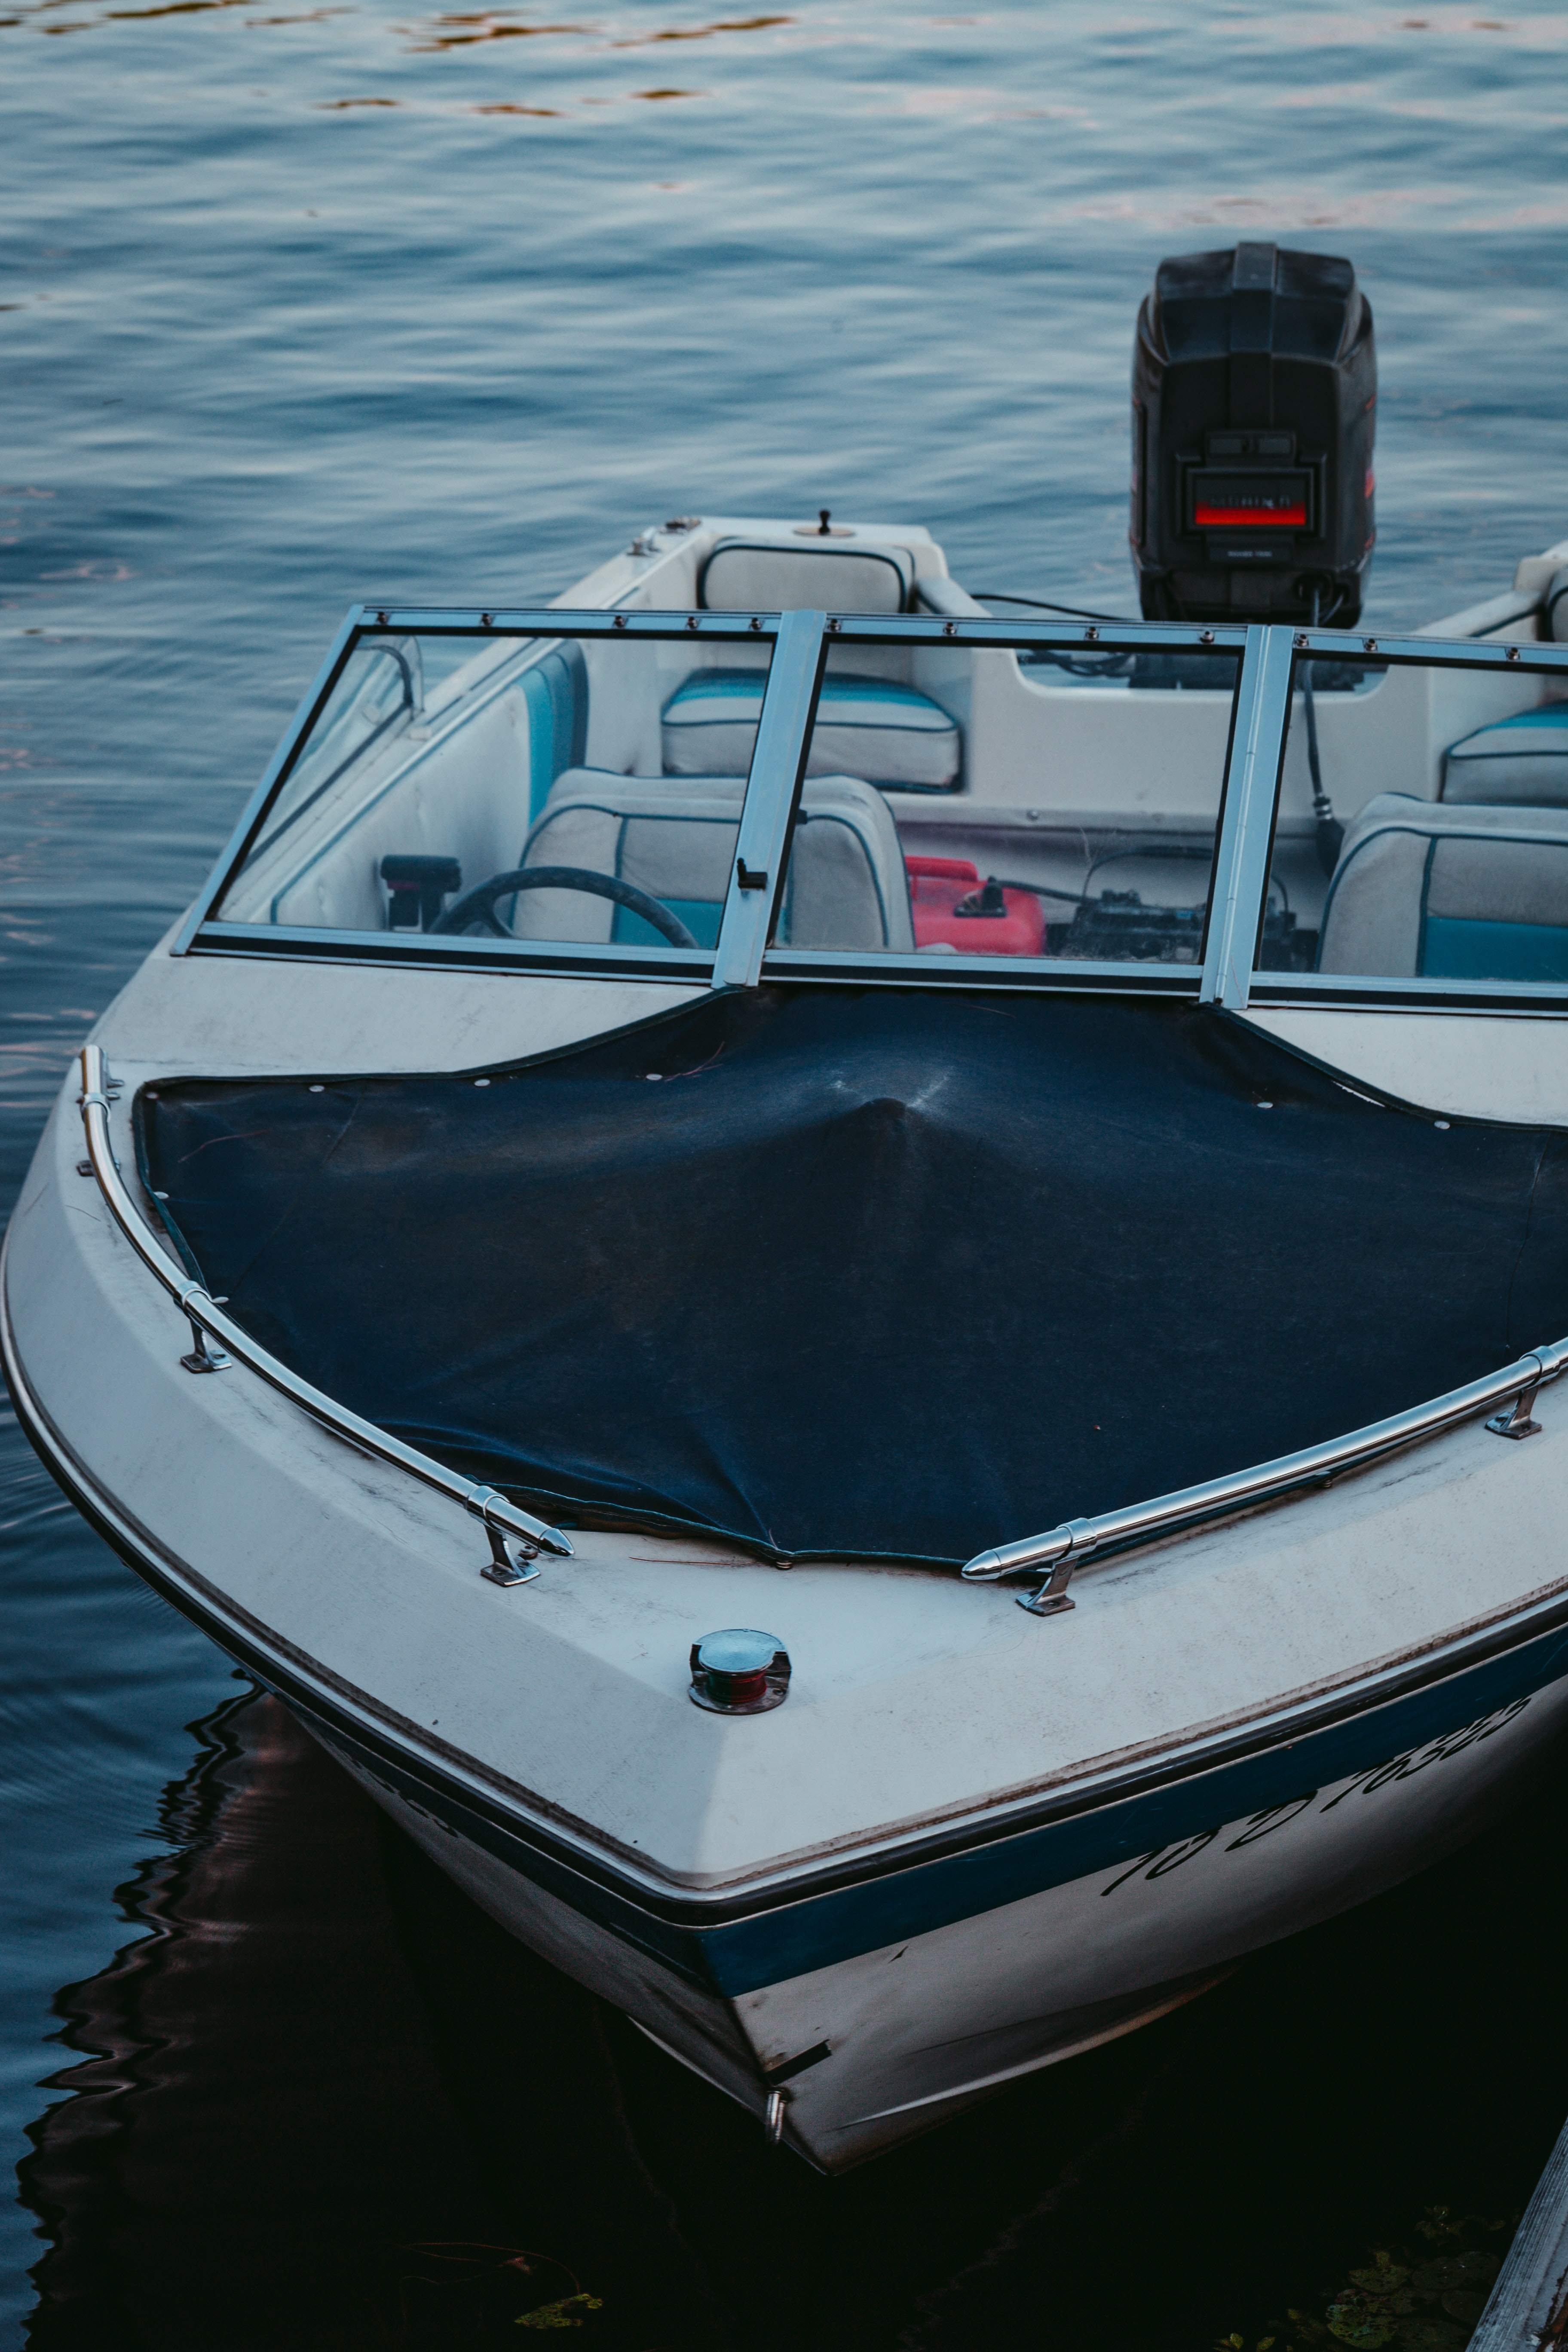 white, black, and gray motorboat during daytime